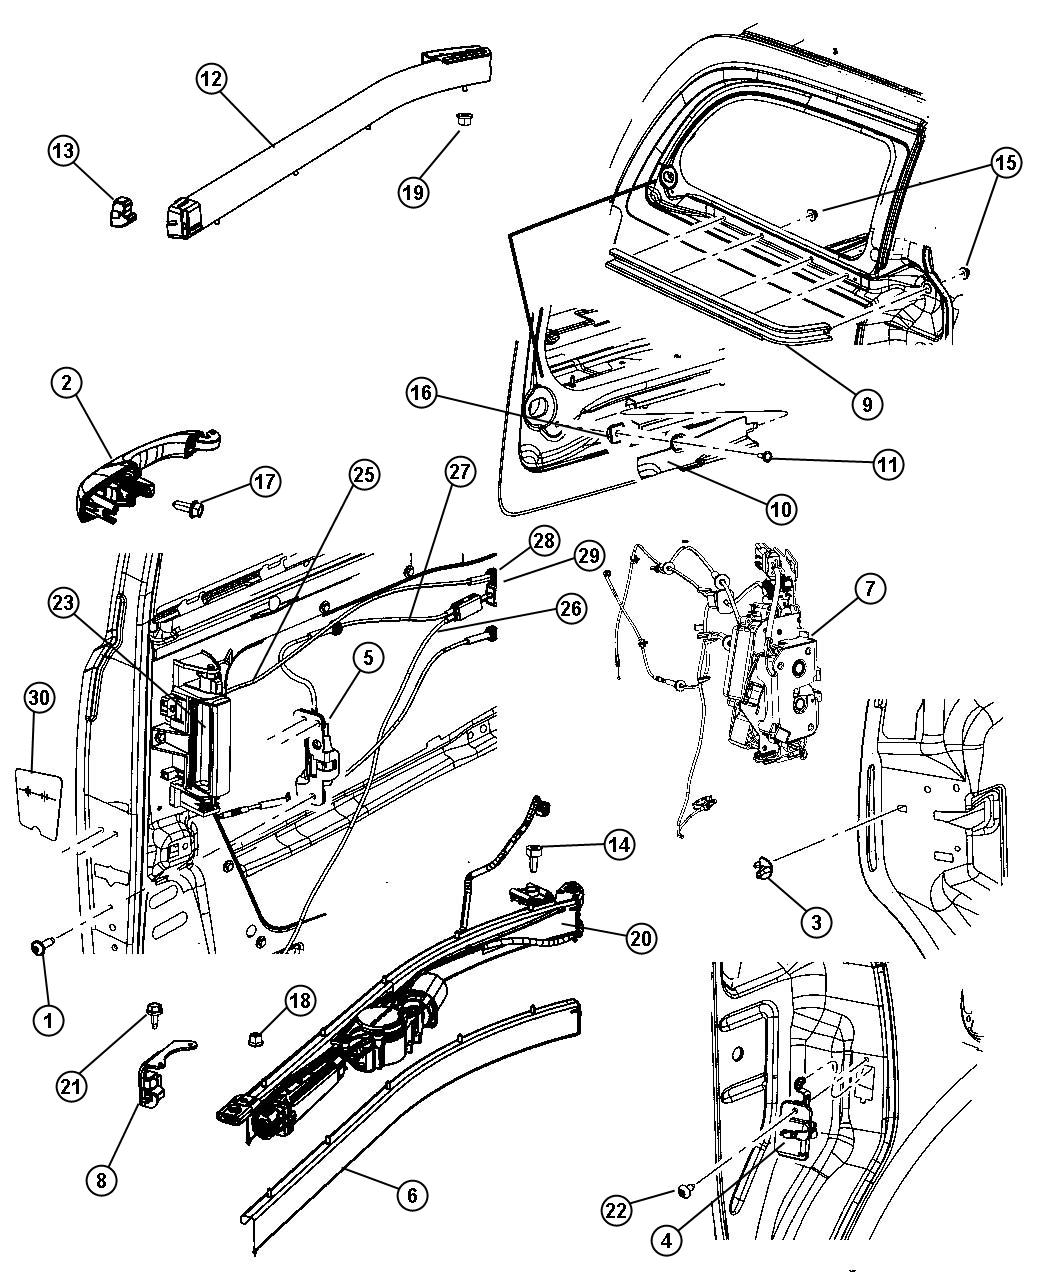 [DIAGRAM] 2002 Dodge Ram Power Window Wiring Diagram FULL